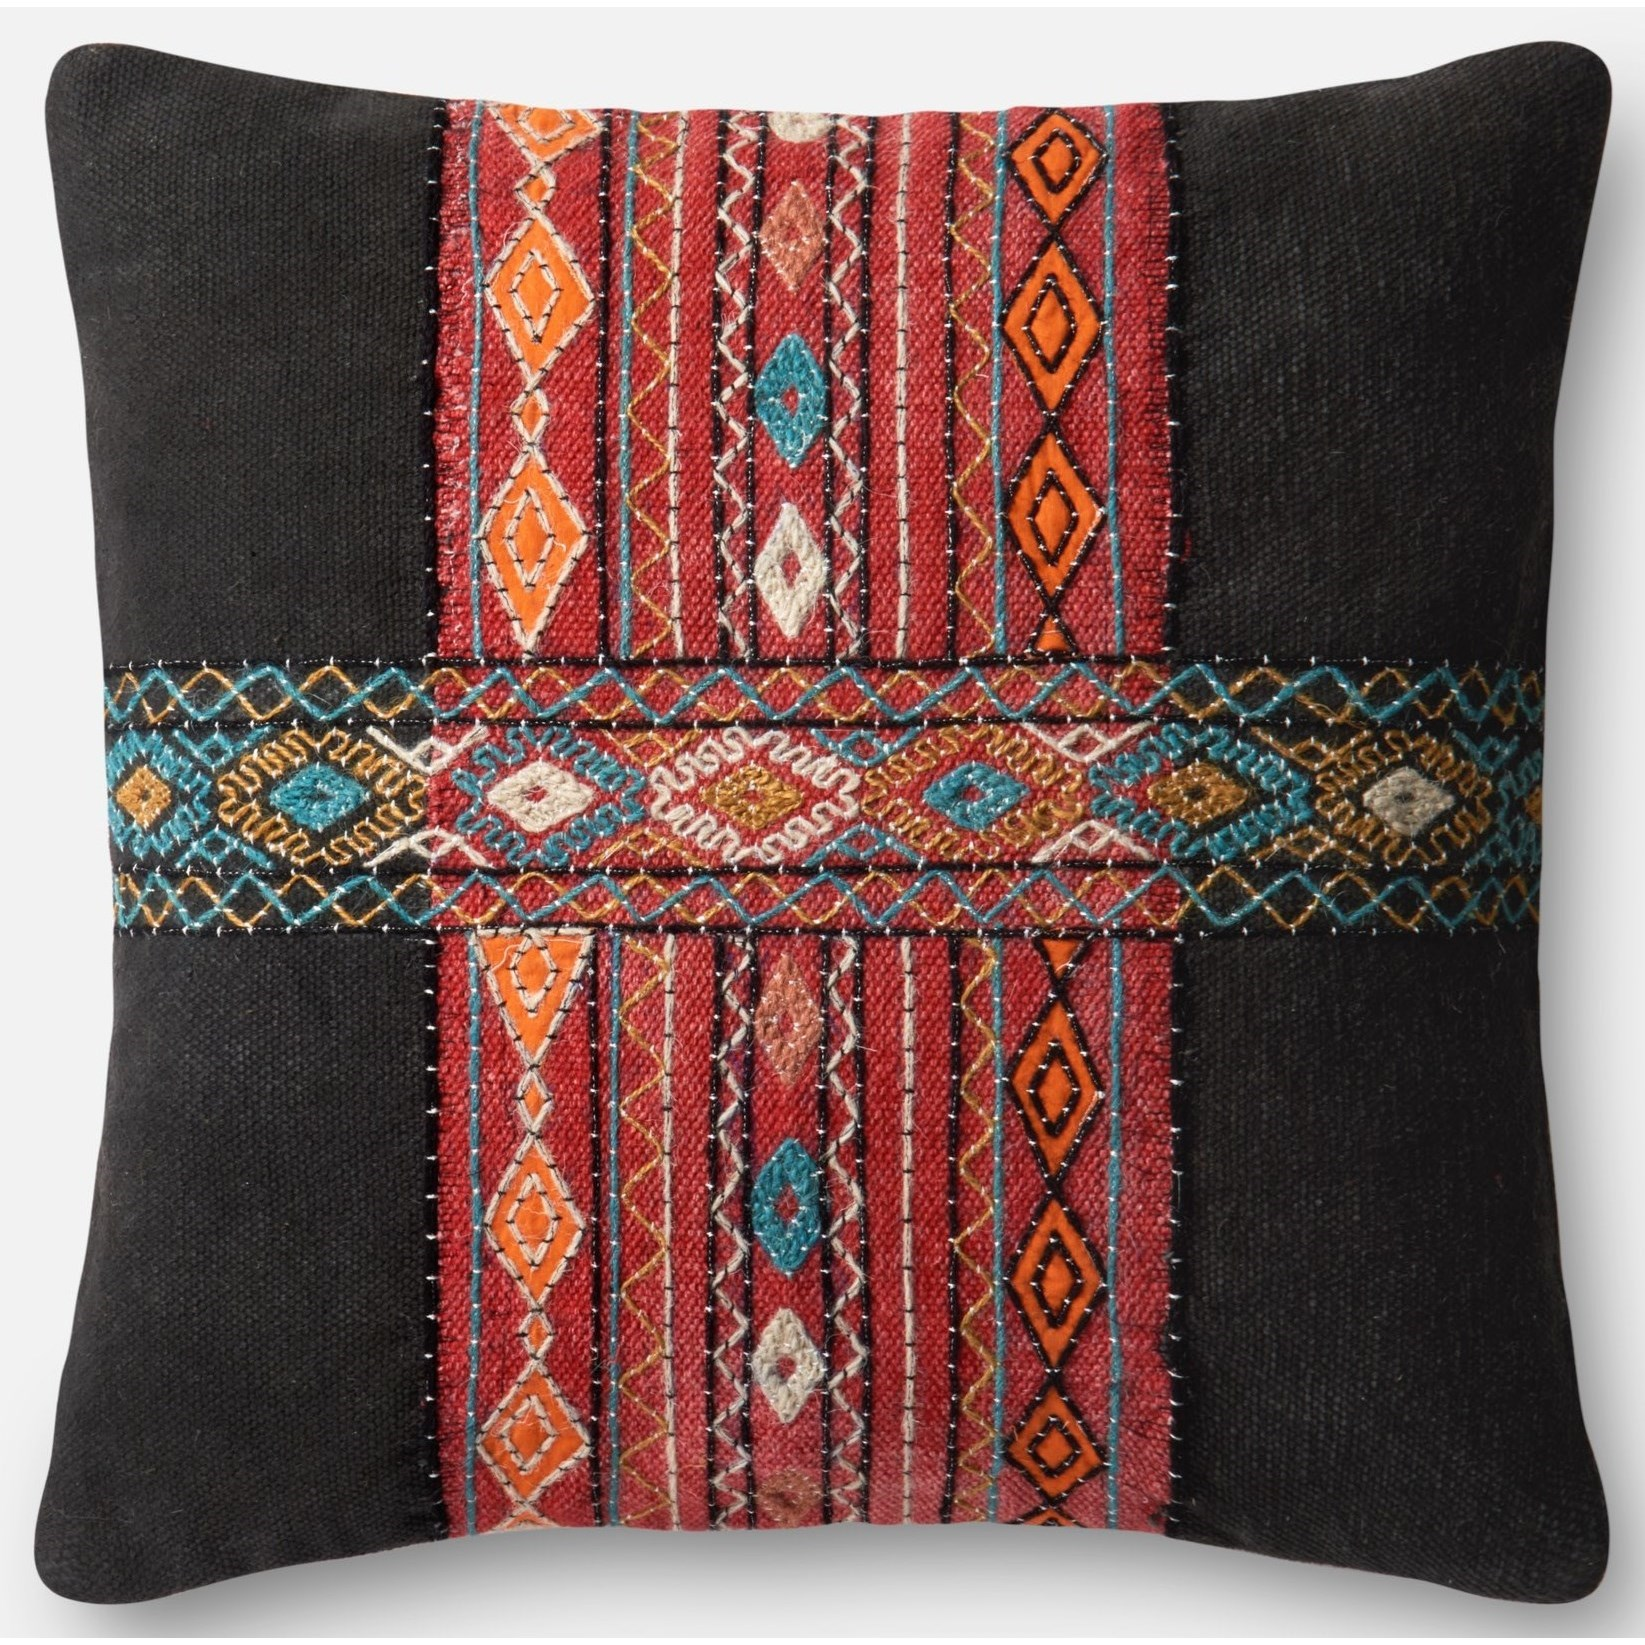 """Embroidery 22"""" X 22"""" Cover w/Poly by Loloi Rugs at Virginia Furniture Market"""